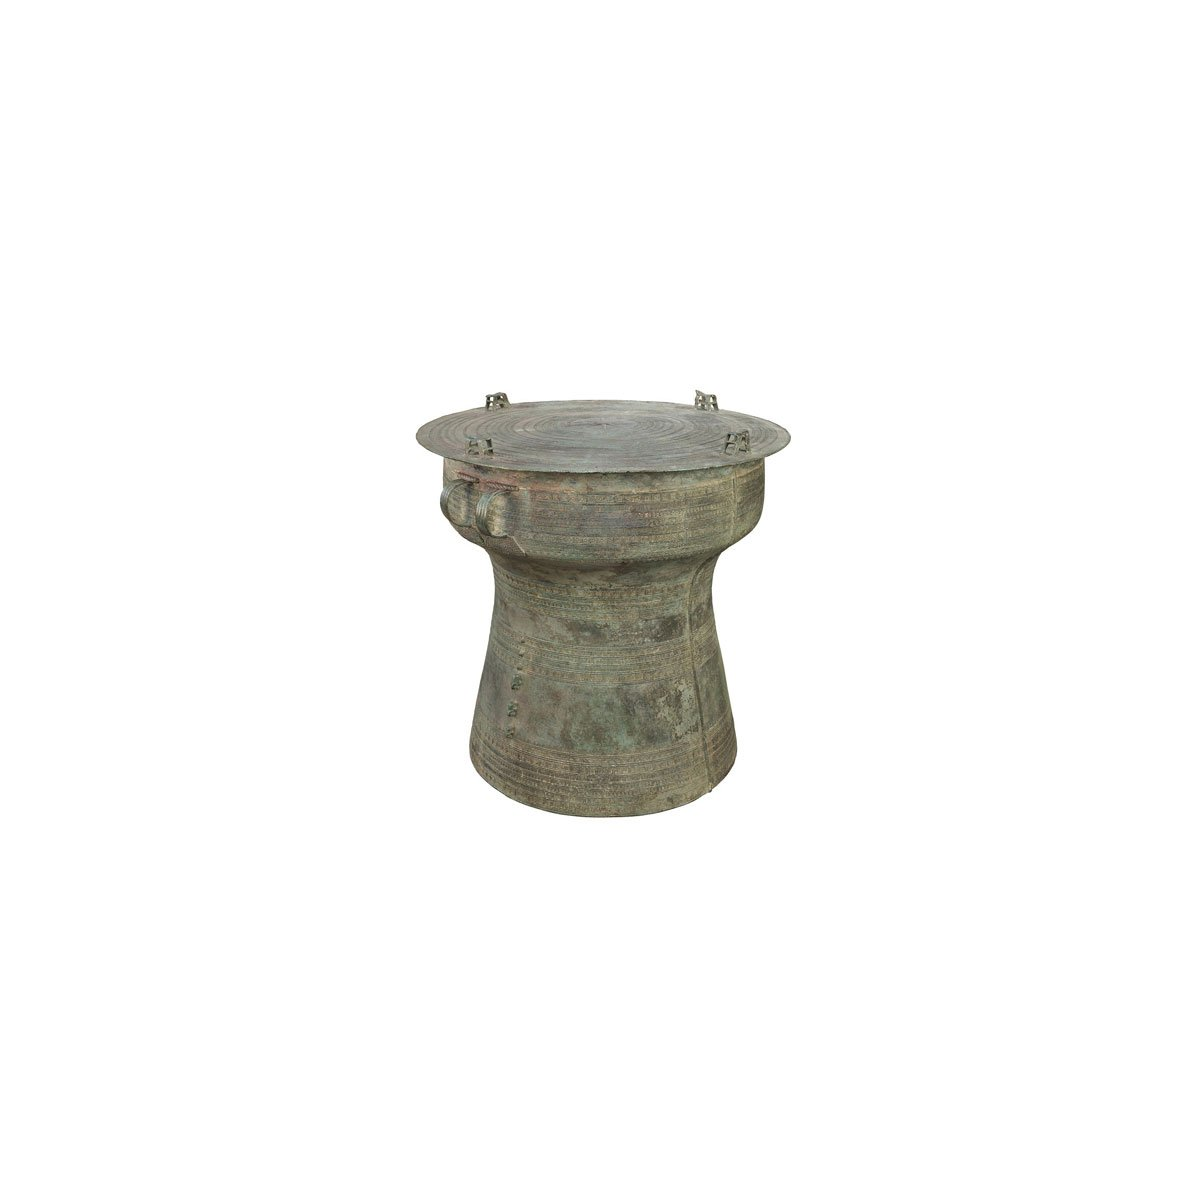 short rain drum antique replica solid bronze pottery barn frog accent table raindrums indoor decor inspiring seats and coffee tables brass finish wicker sofa glass center with